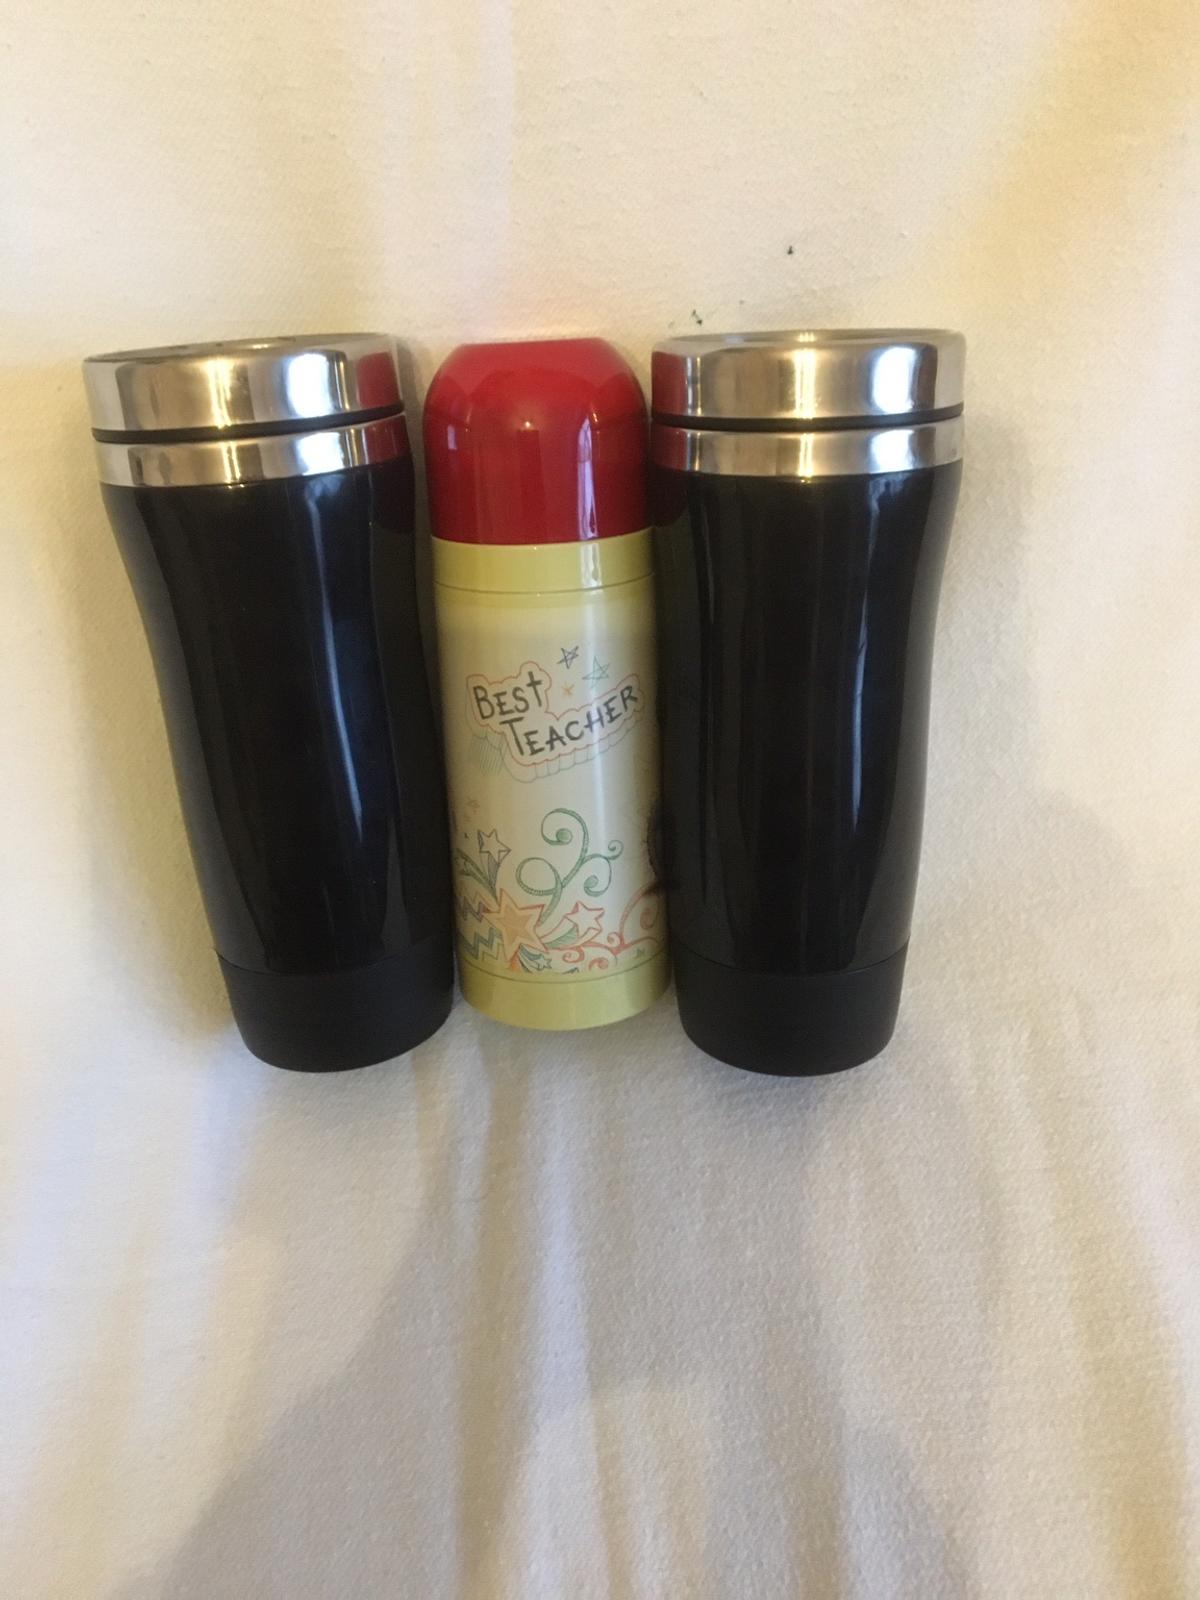 2 Insulated Travel Mugs. 500 mls each and I Small flask, ( 300 mls ). Flask has Best Teacher written on it. Flask is new. Travel Mugs used only once. £6.00 for all 3. Can be sold separately.